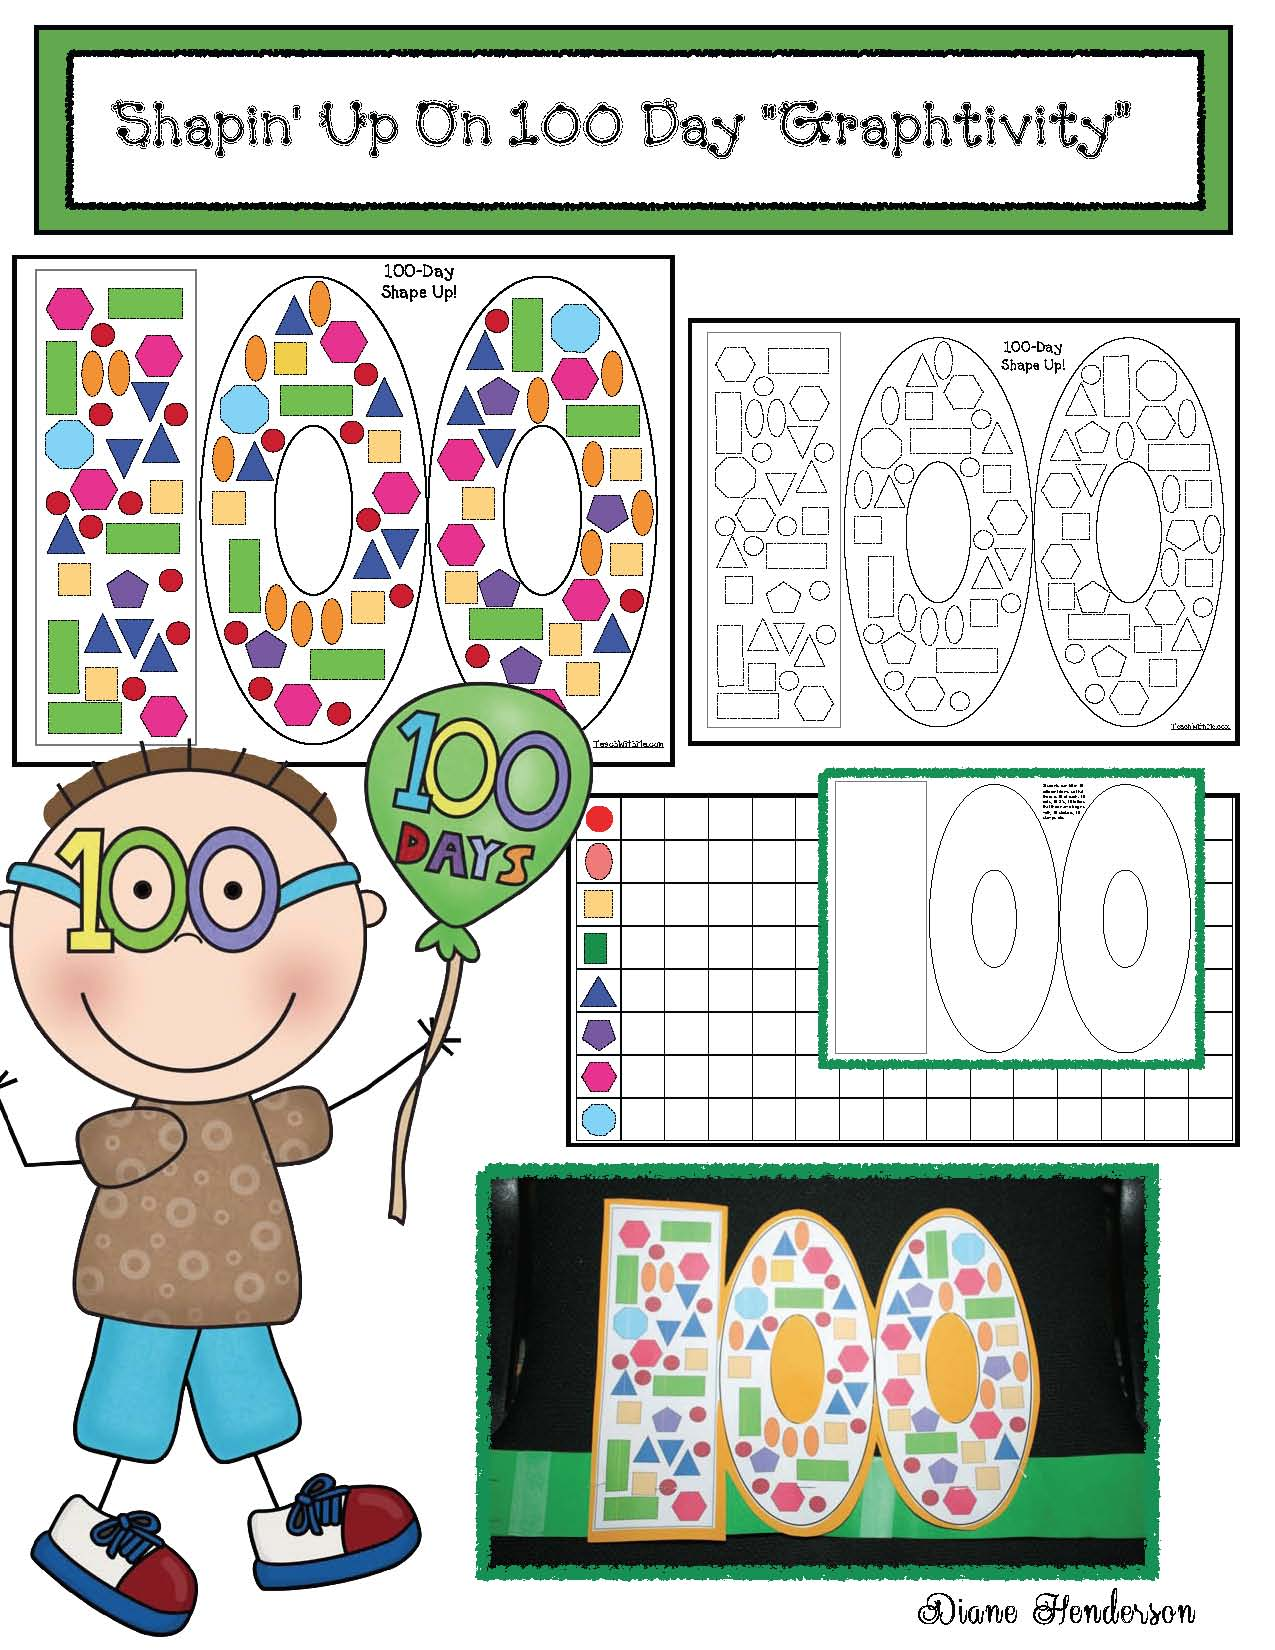 skip counting activities, 100 day activities, 100 day crafts, graphing activities, 2D shape activities, skip counting by 5s and 10s, fun ways to count to 100, 100 day crown